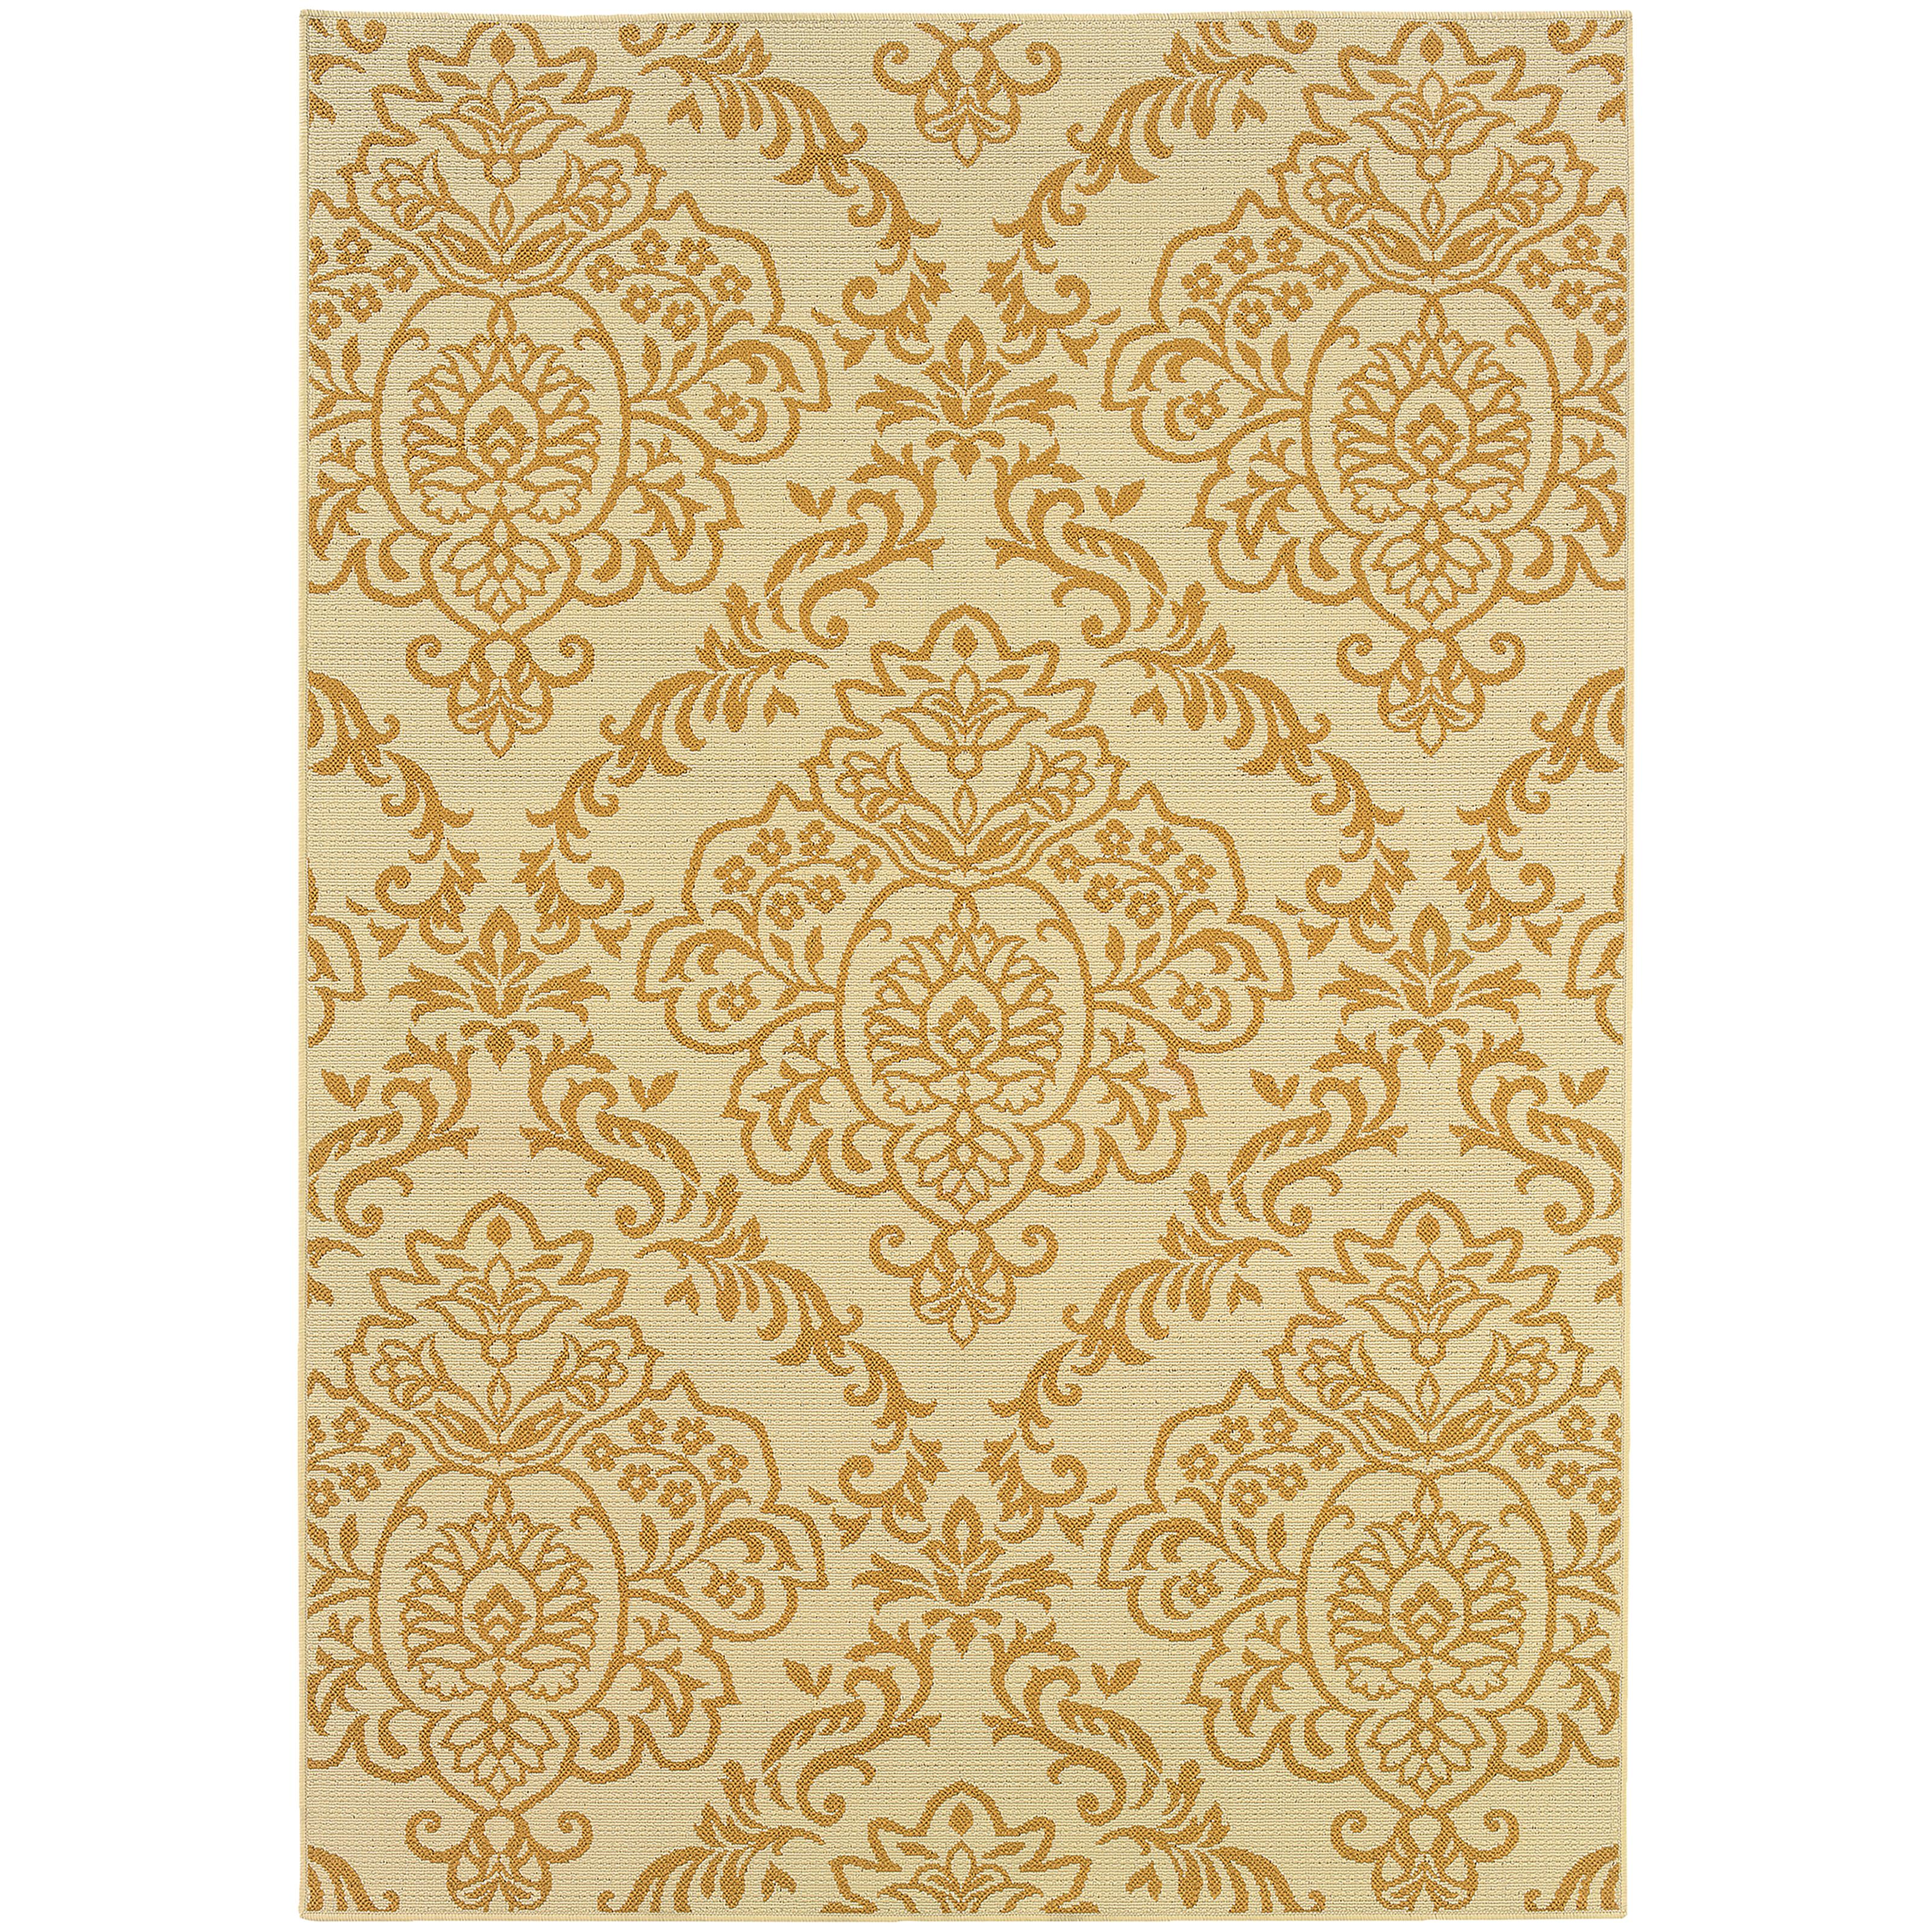 "Bali 8' 6"" X 13' 0"" Rug by Oriental Weavers at Steger's Furniture"